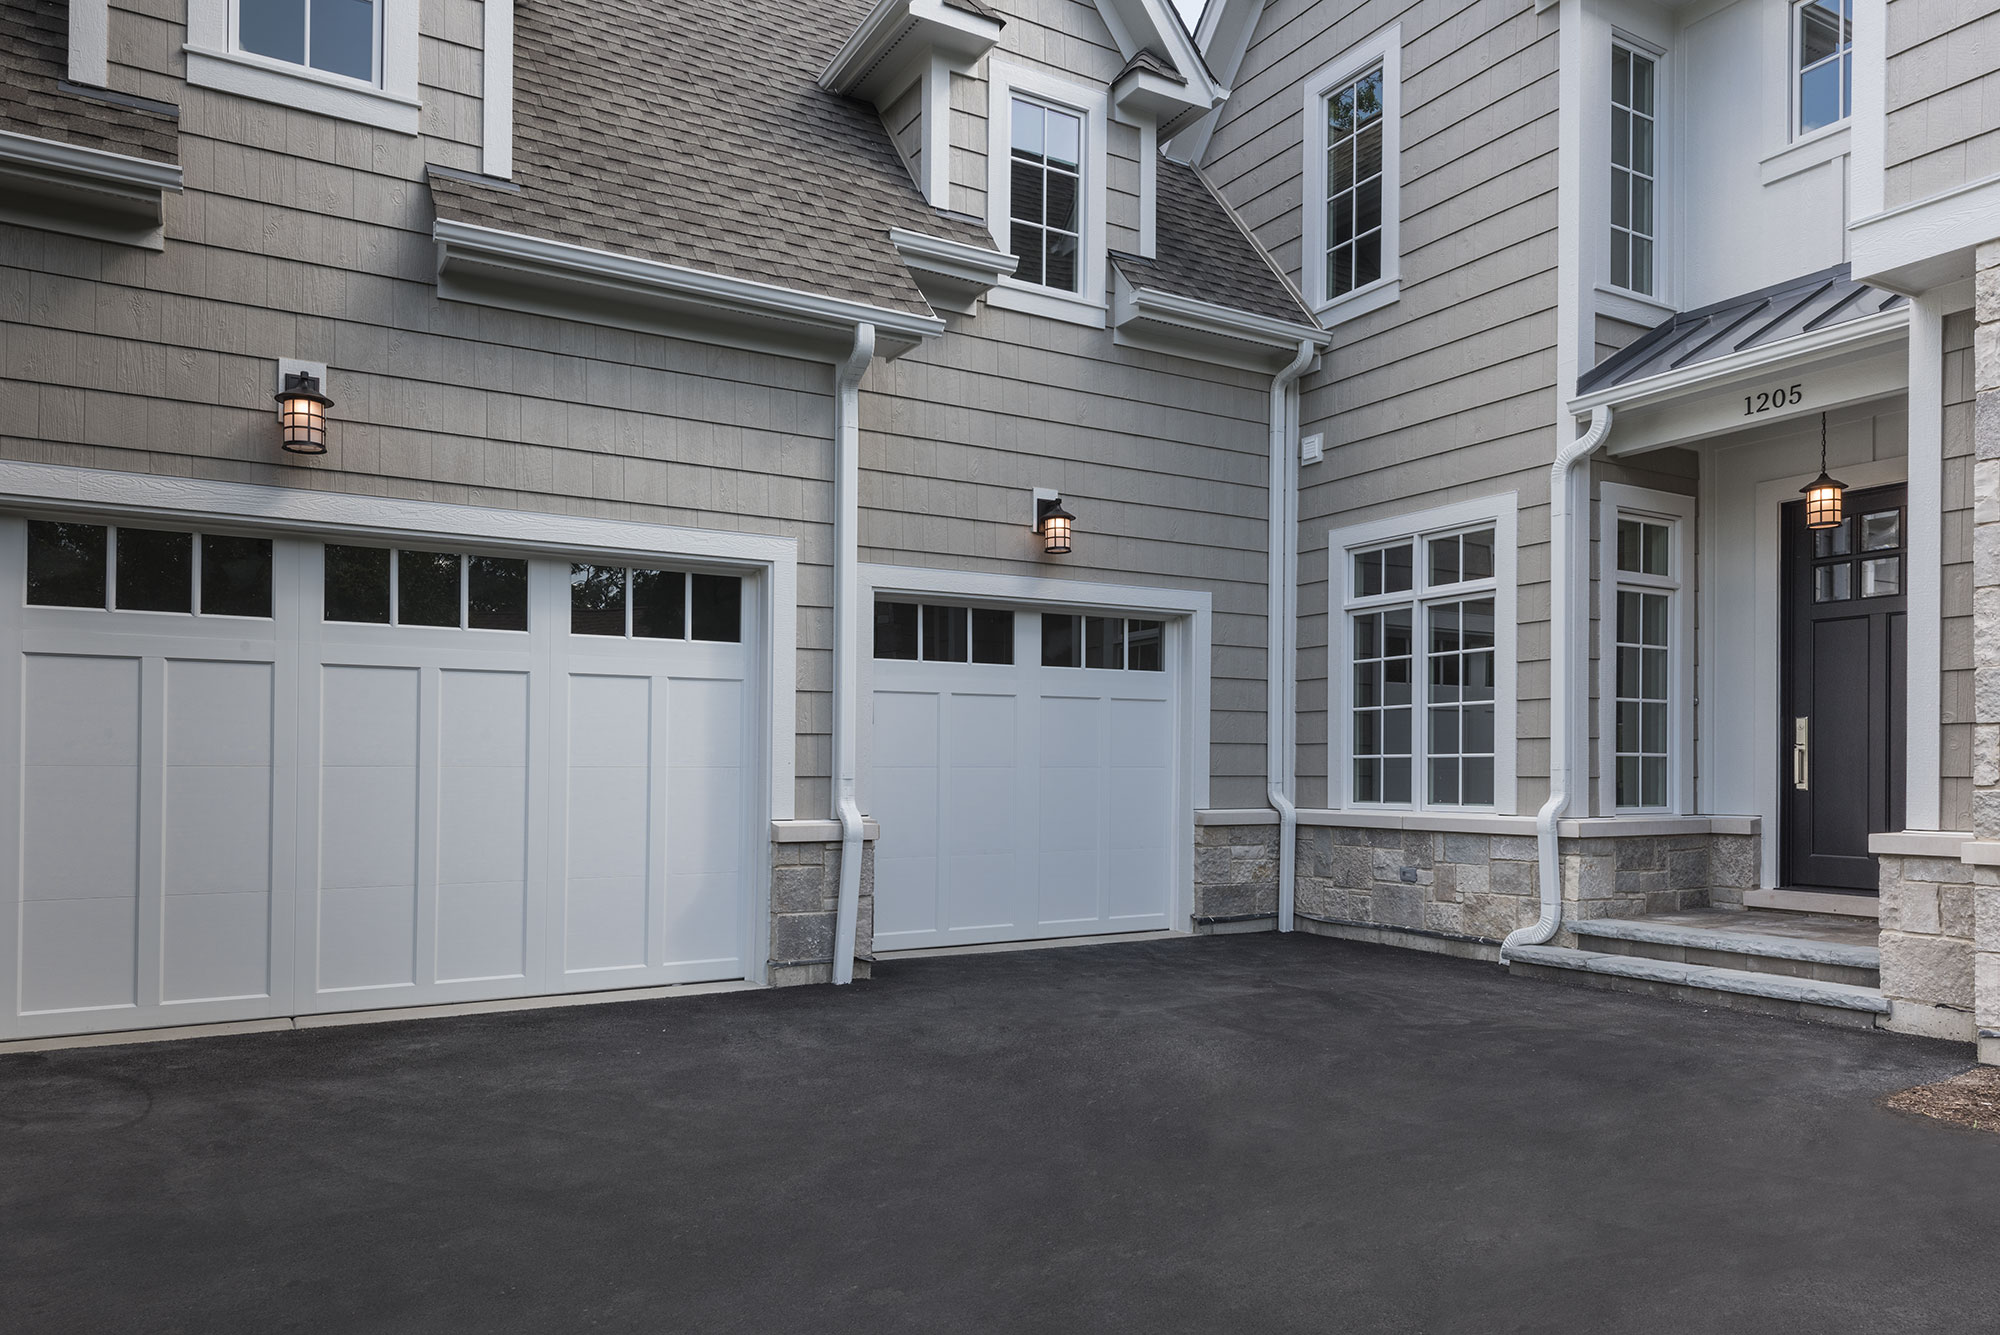 Garage Doors Sales Installation Service Repair